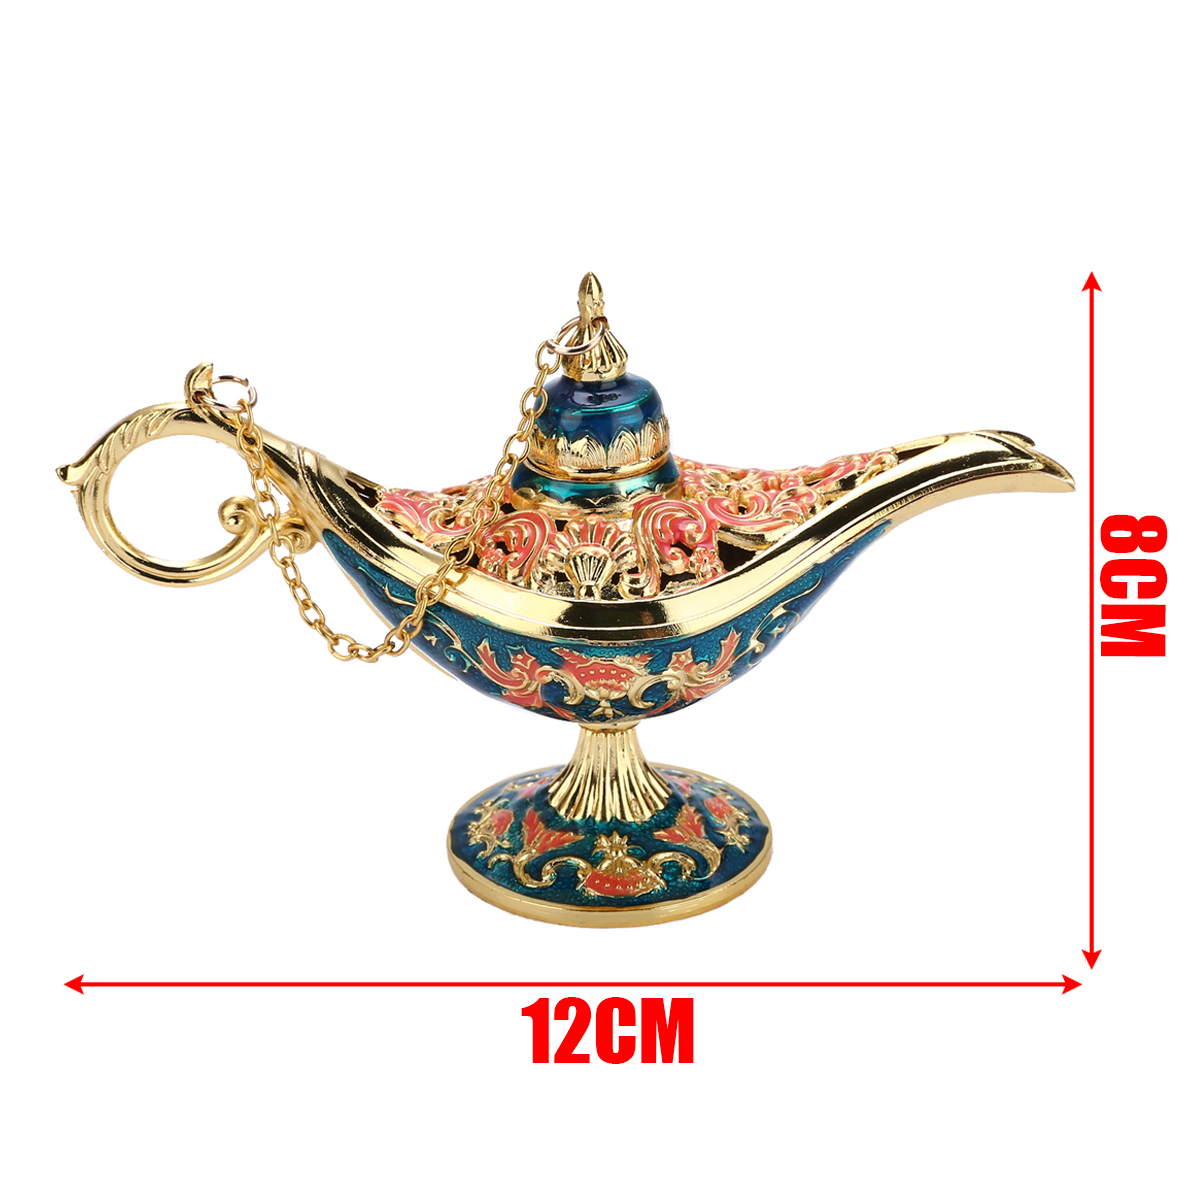 Traditional Aladdin Lamp Magic Lamp Retro Censer Panto Tea Pot Genie Oil Lamp Zinc Alloy For Home Decor Ornaments